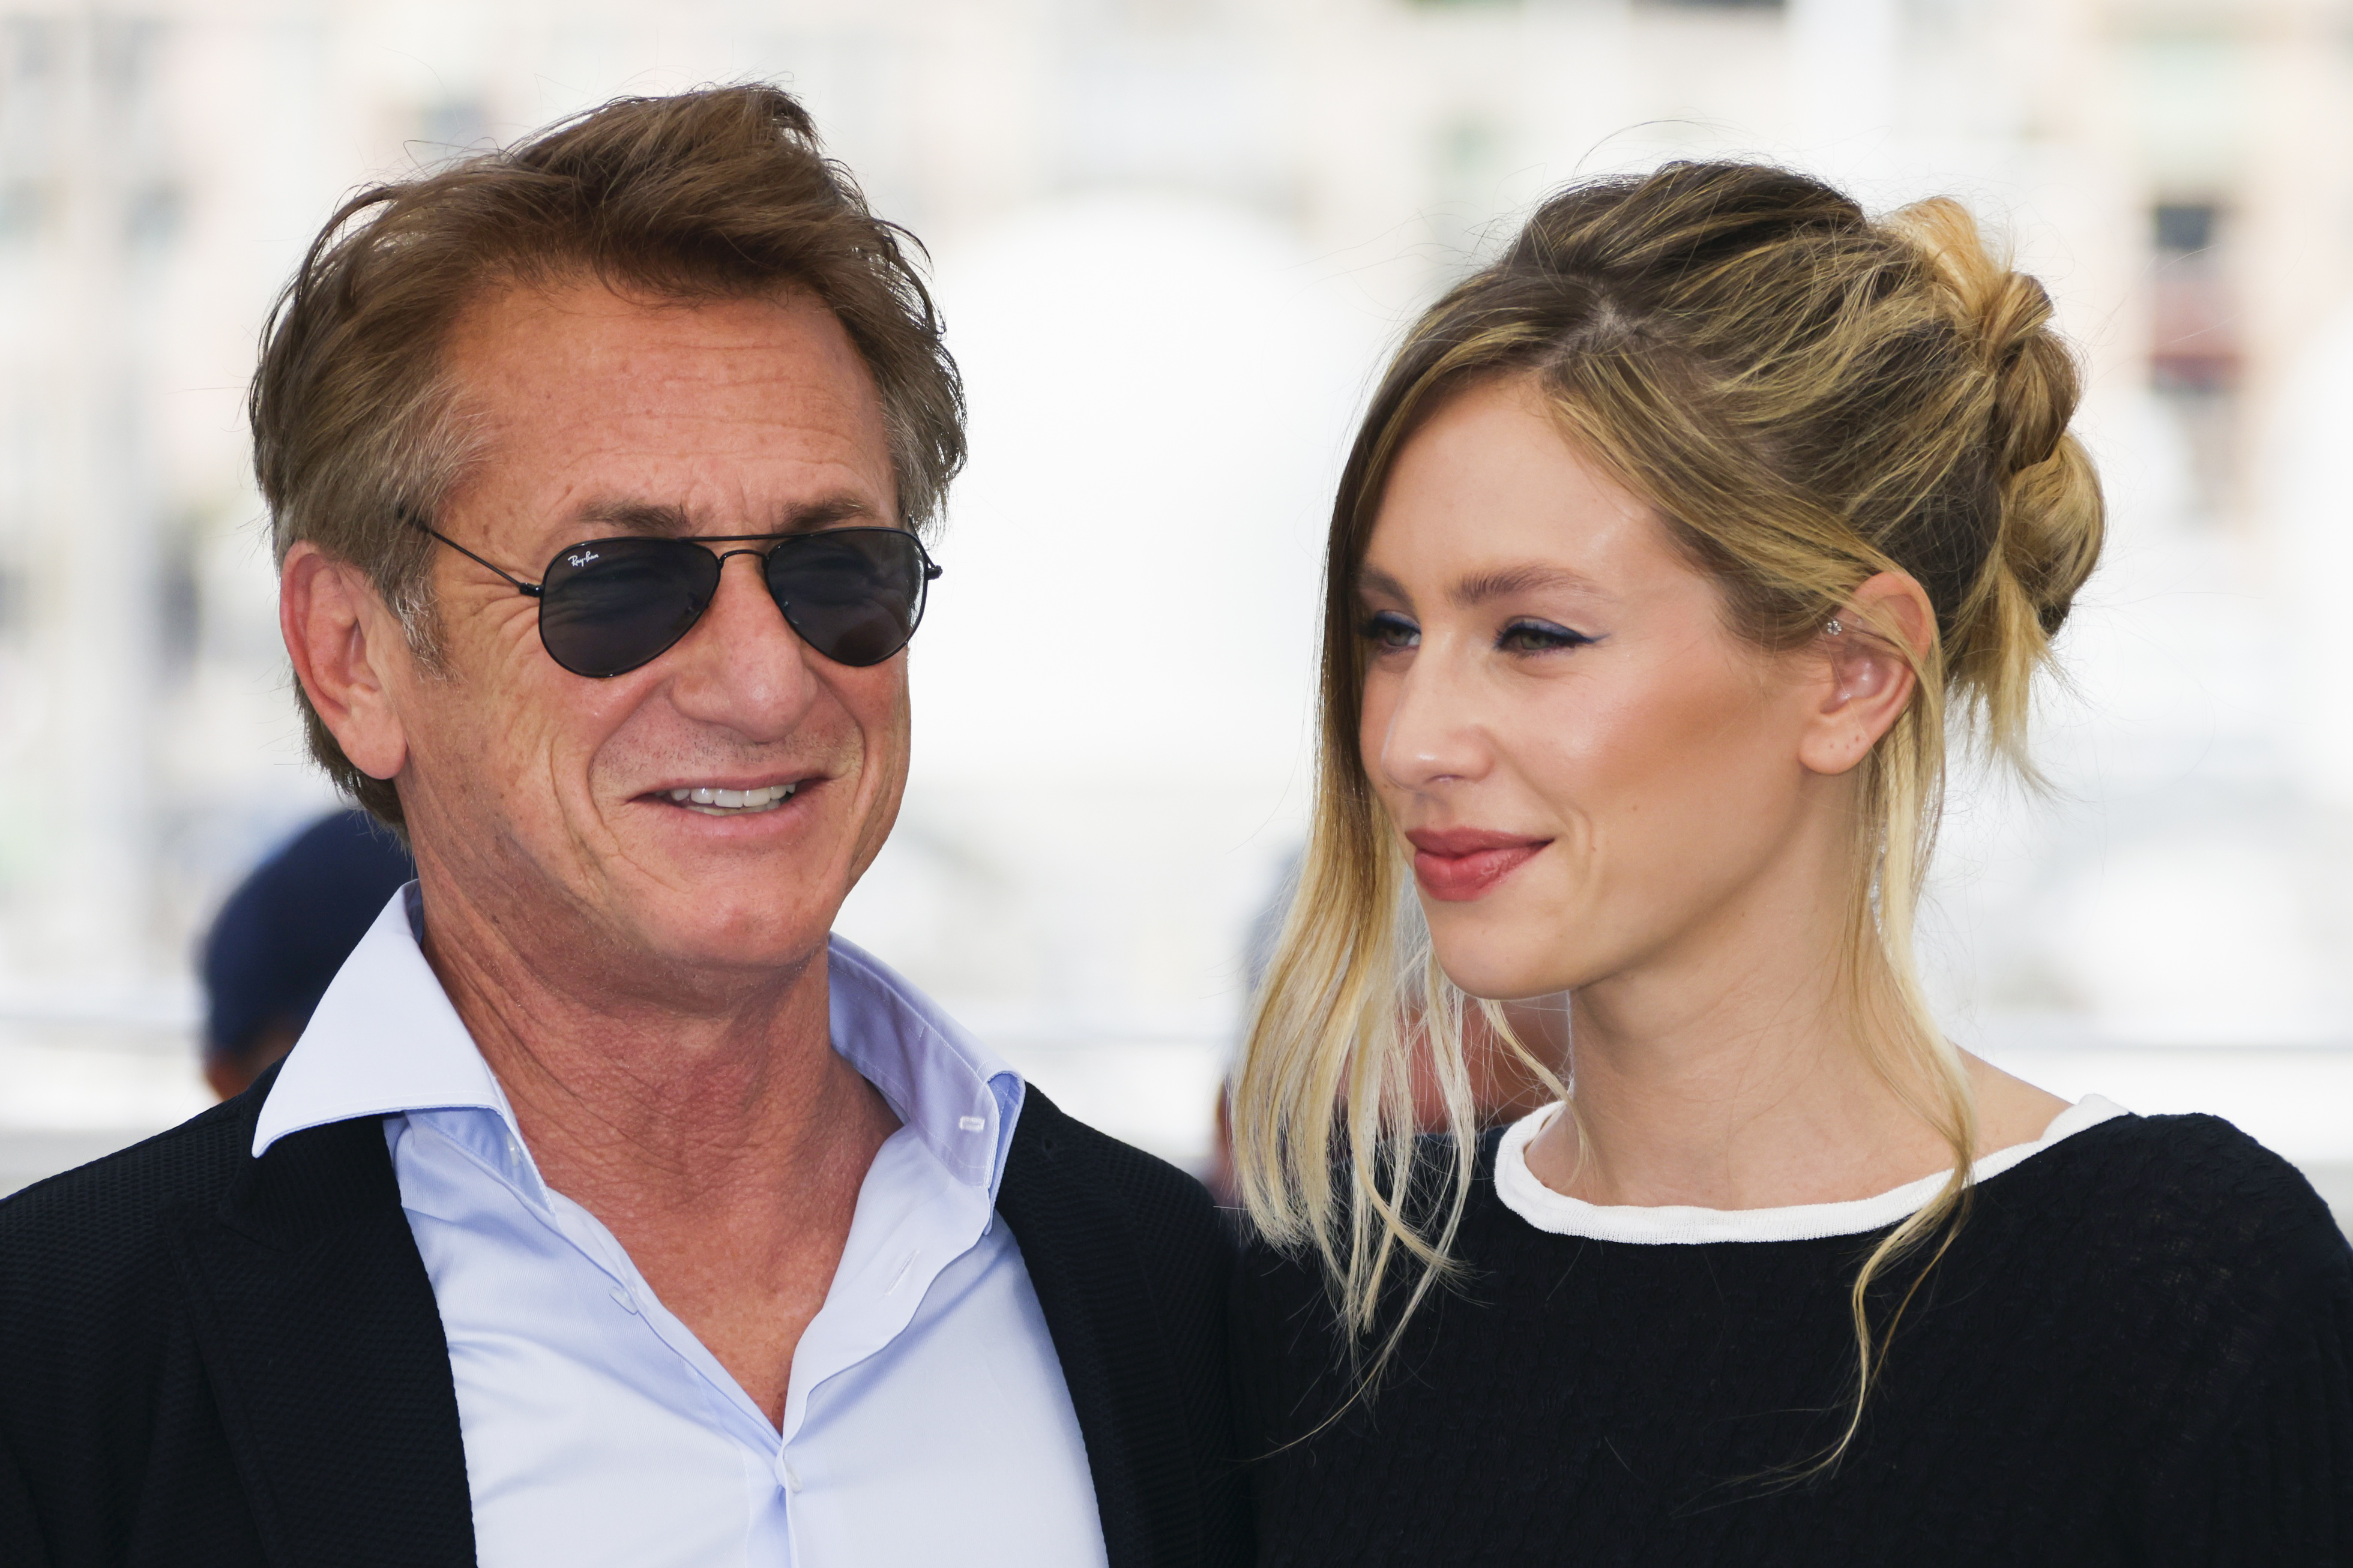 Acting with daughter, Sean Penn explores family ties in Cannes film